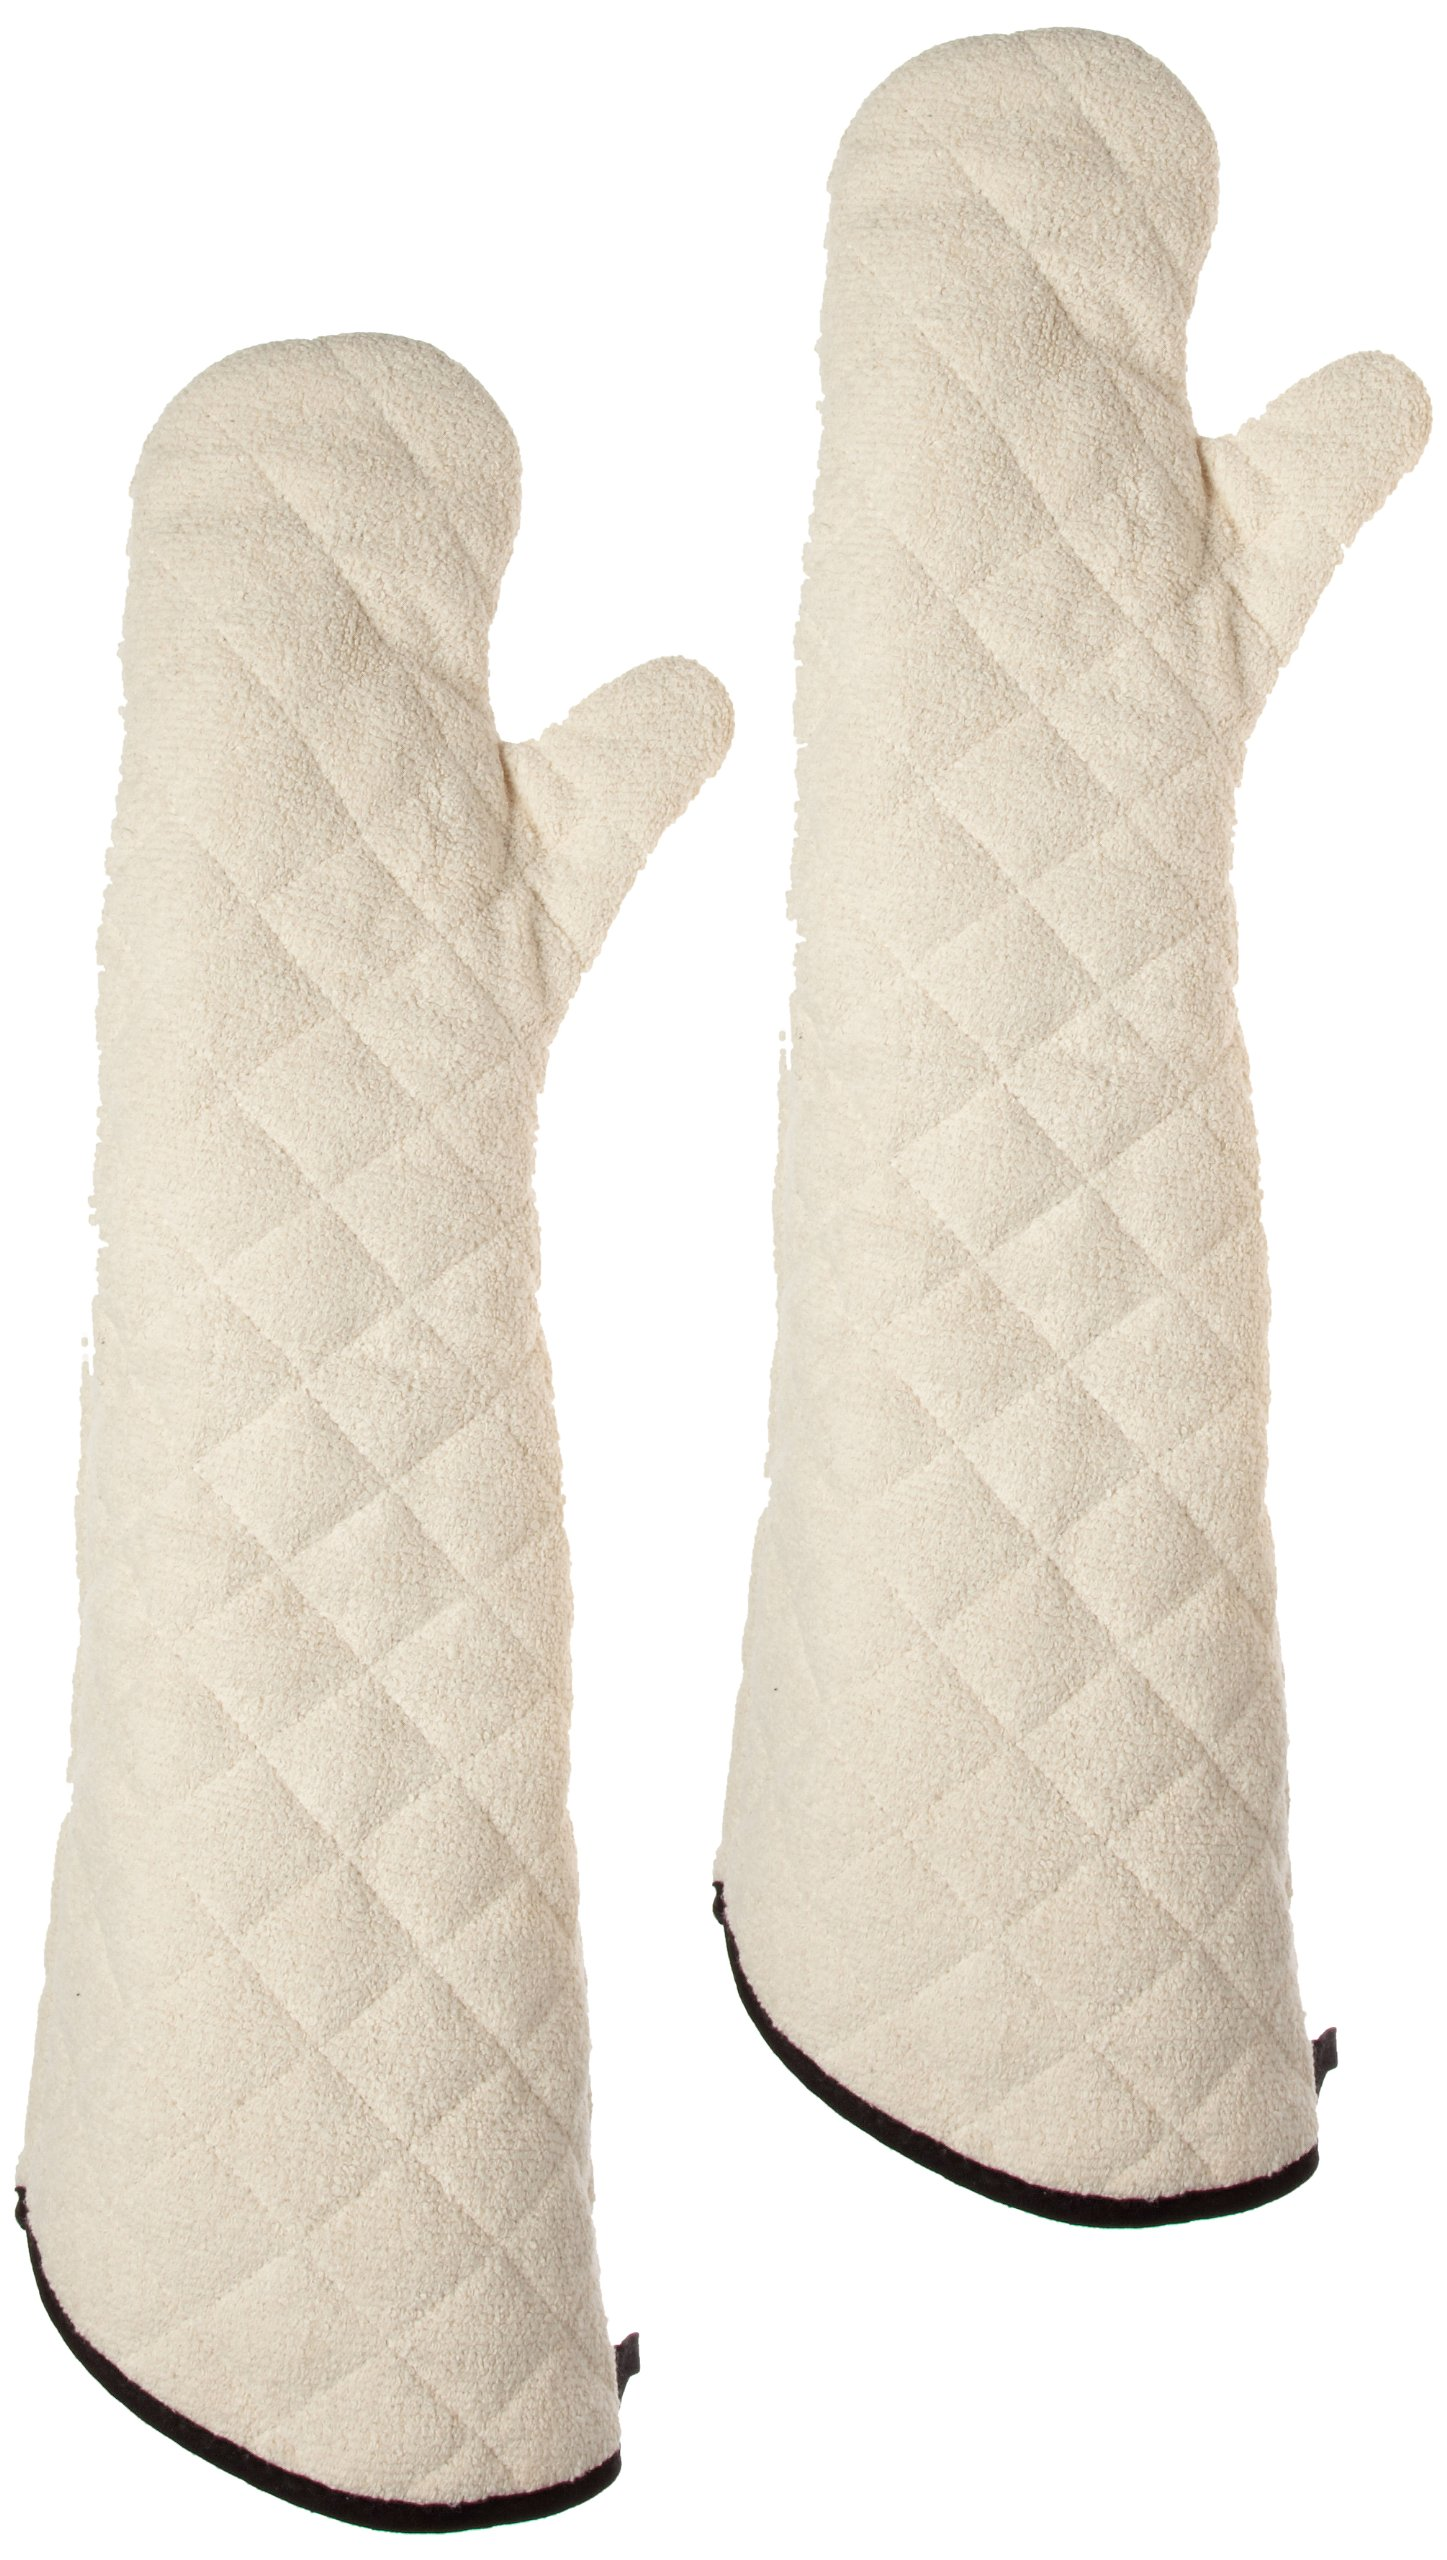 San Jamar 824TM Heavy Duty Terry Cloth Temperature Protection Oven Mitt, 24'' Length, Natural by San Jamar